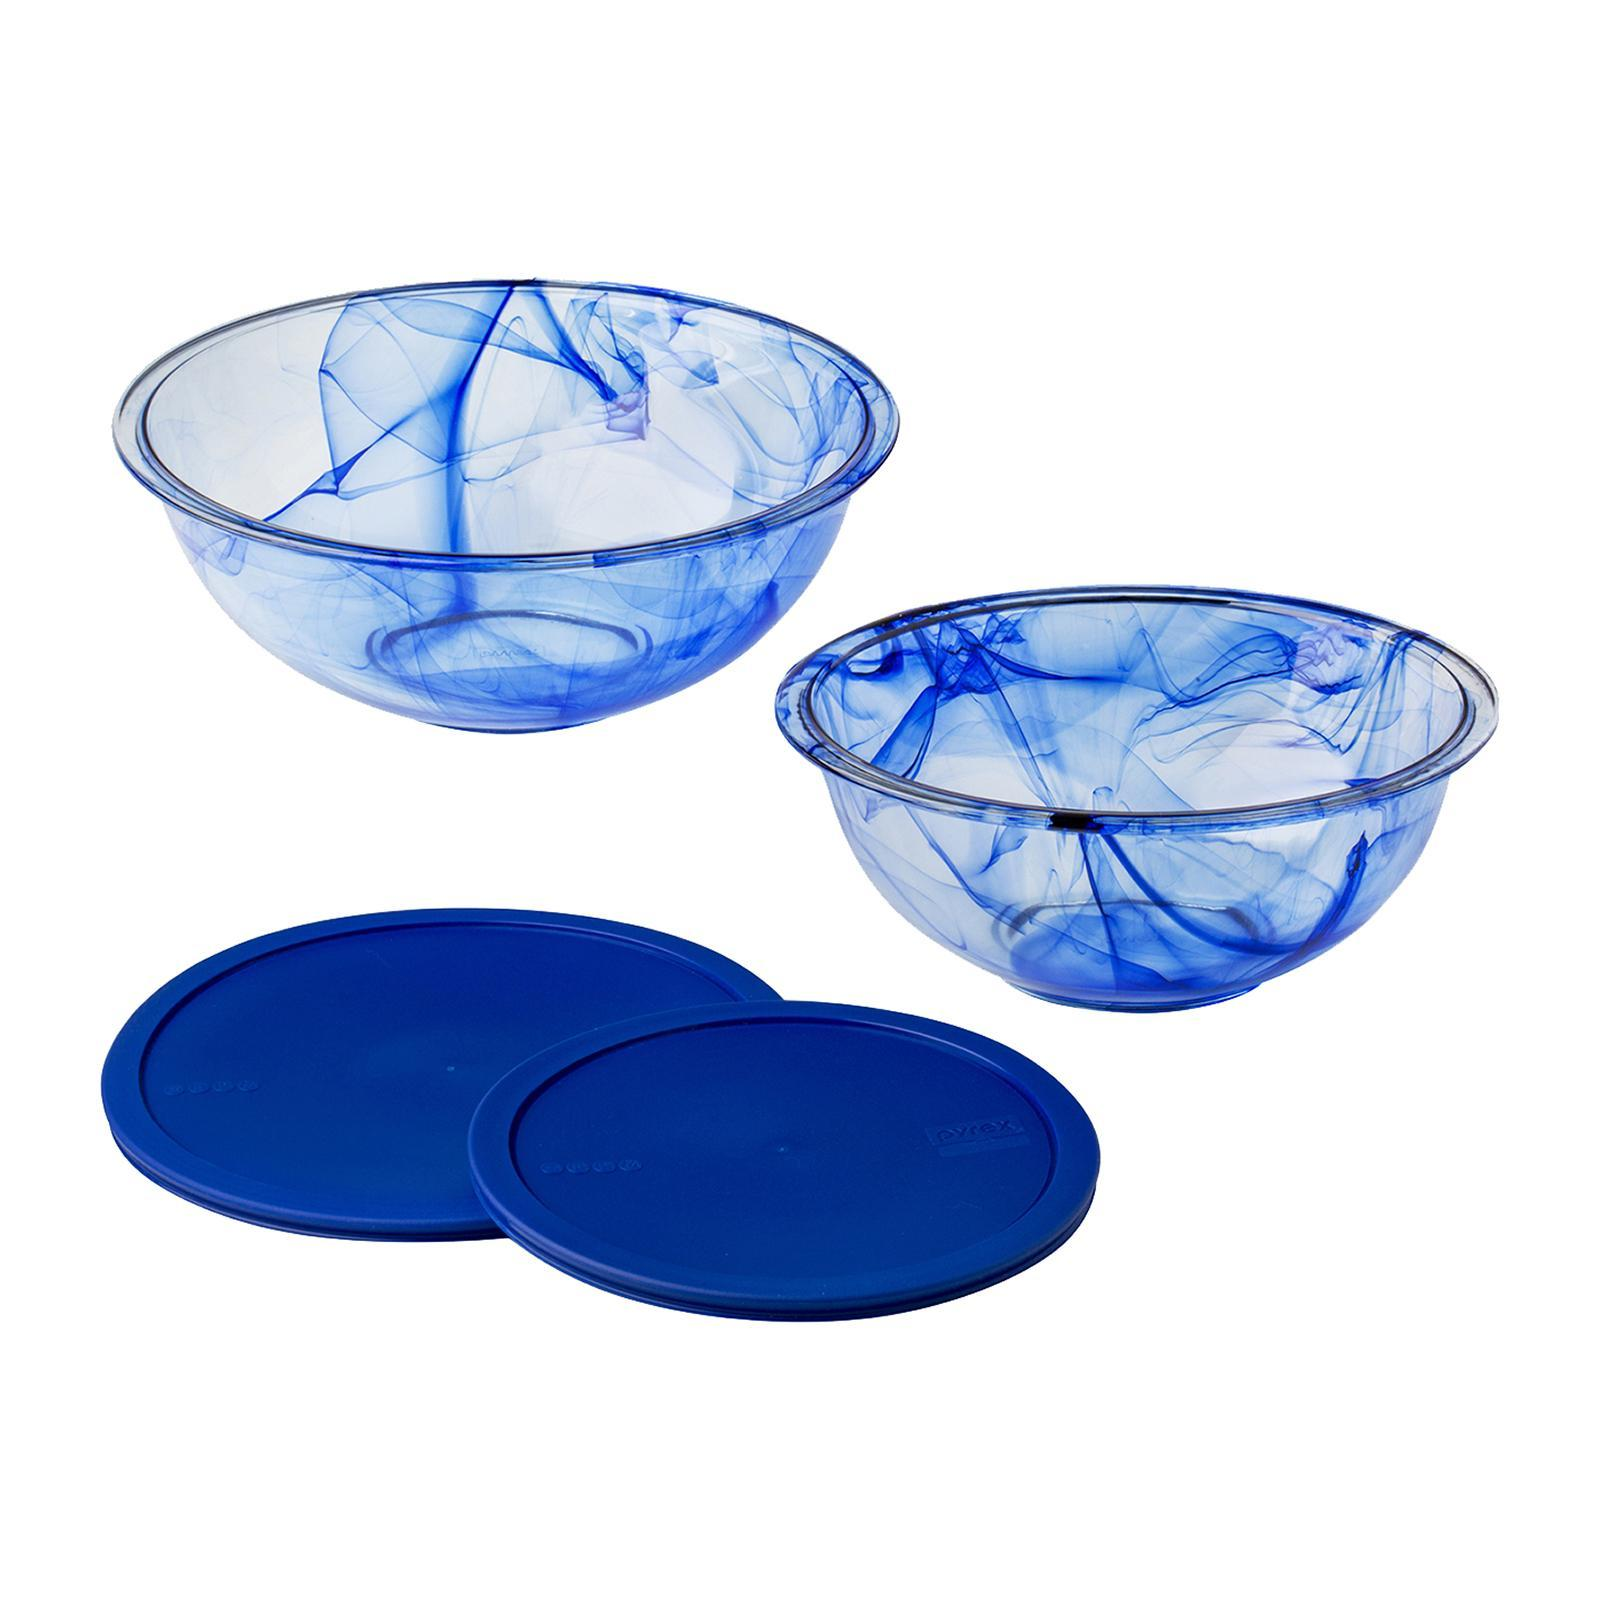 Pyrex 4 PCS Mixing Bowl Set (Color : Blue Watercolor)